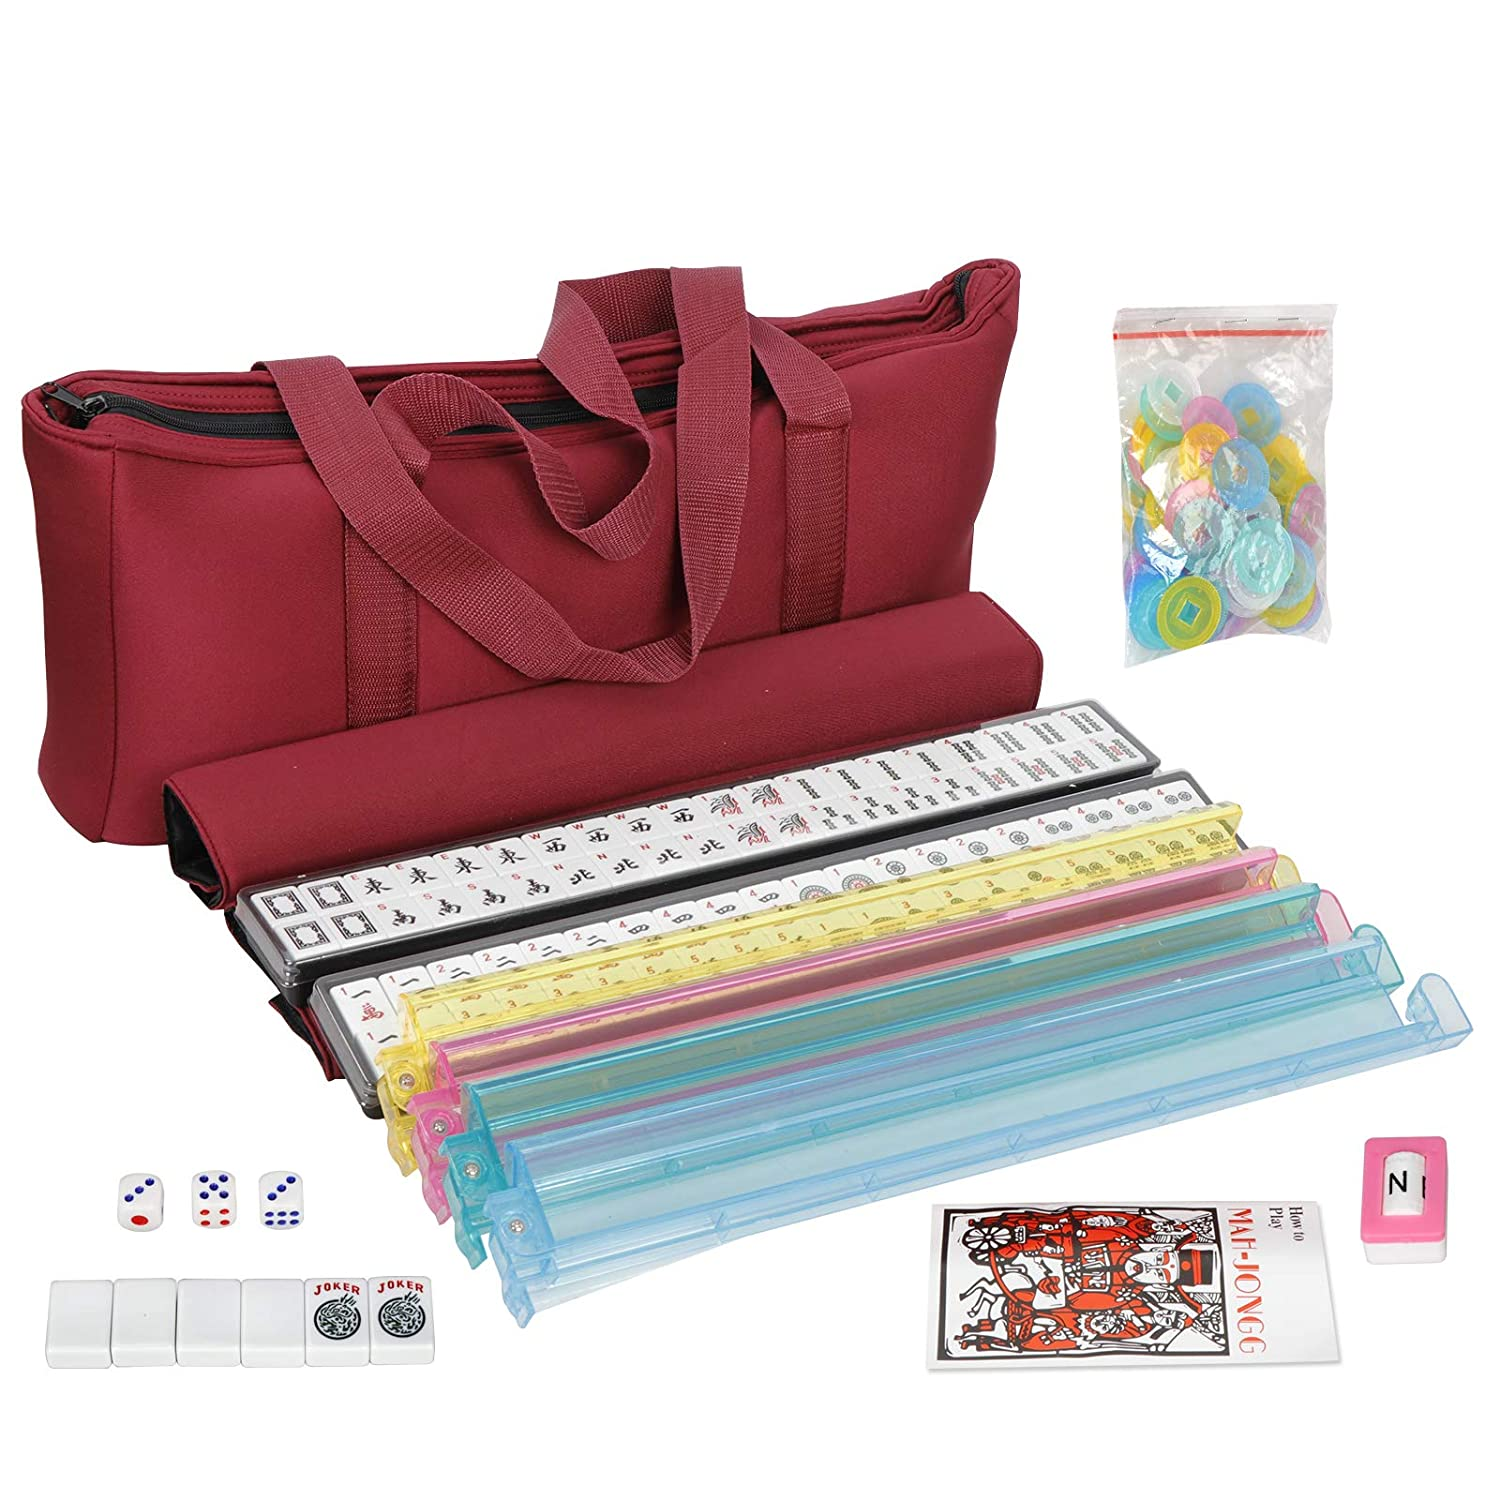 Stylish Full Size Complete Mah Jongg Set American Mah Jongg Mahjong 166 Tile Set with 4 All-in-One Rack//Pushers,Soft Bag